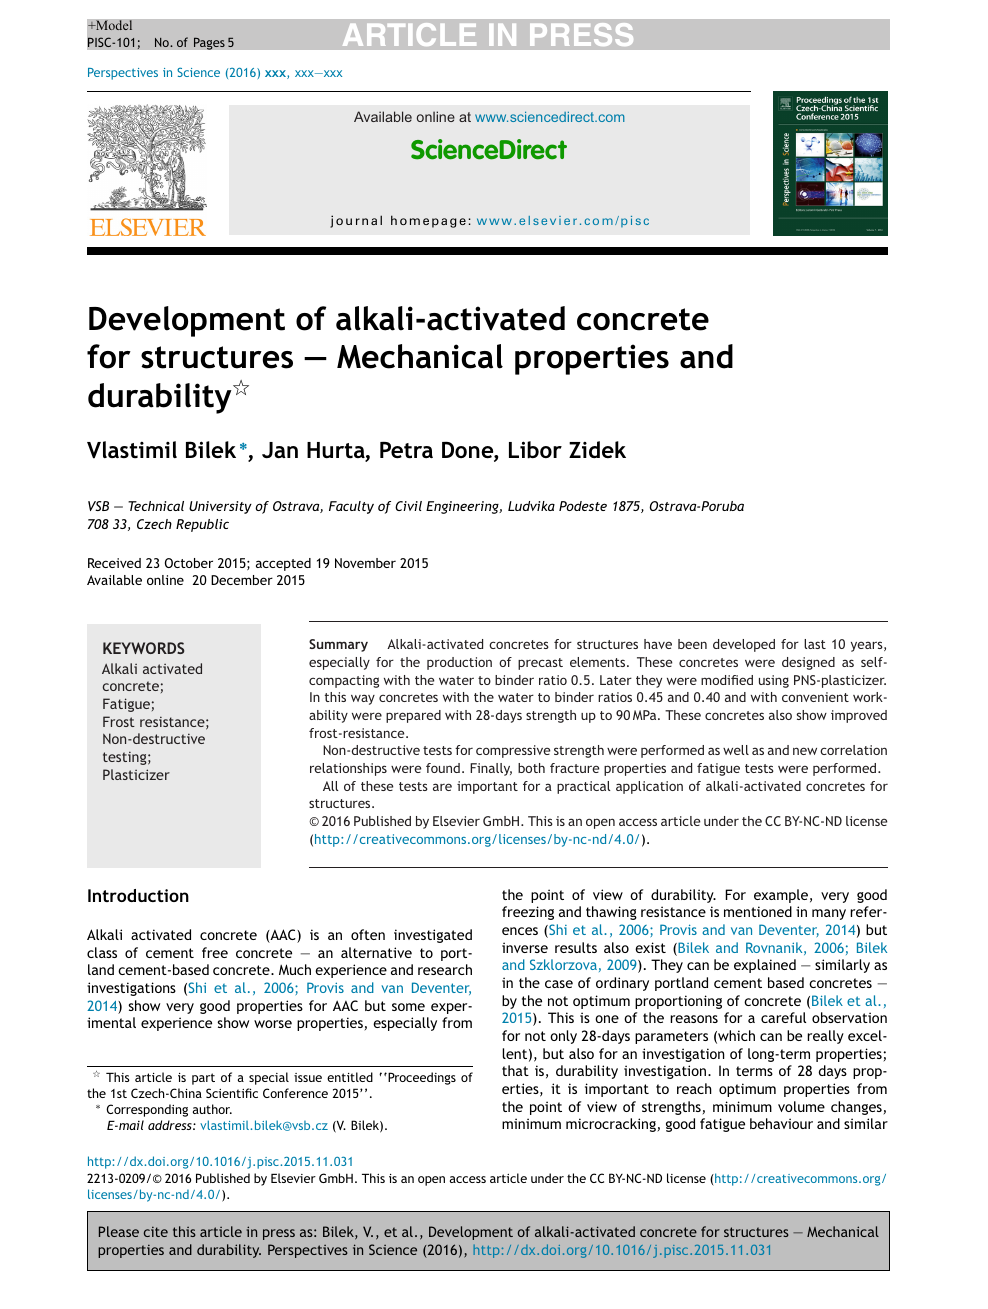 Development of alkali-activated concrete for structures – Mechanical